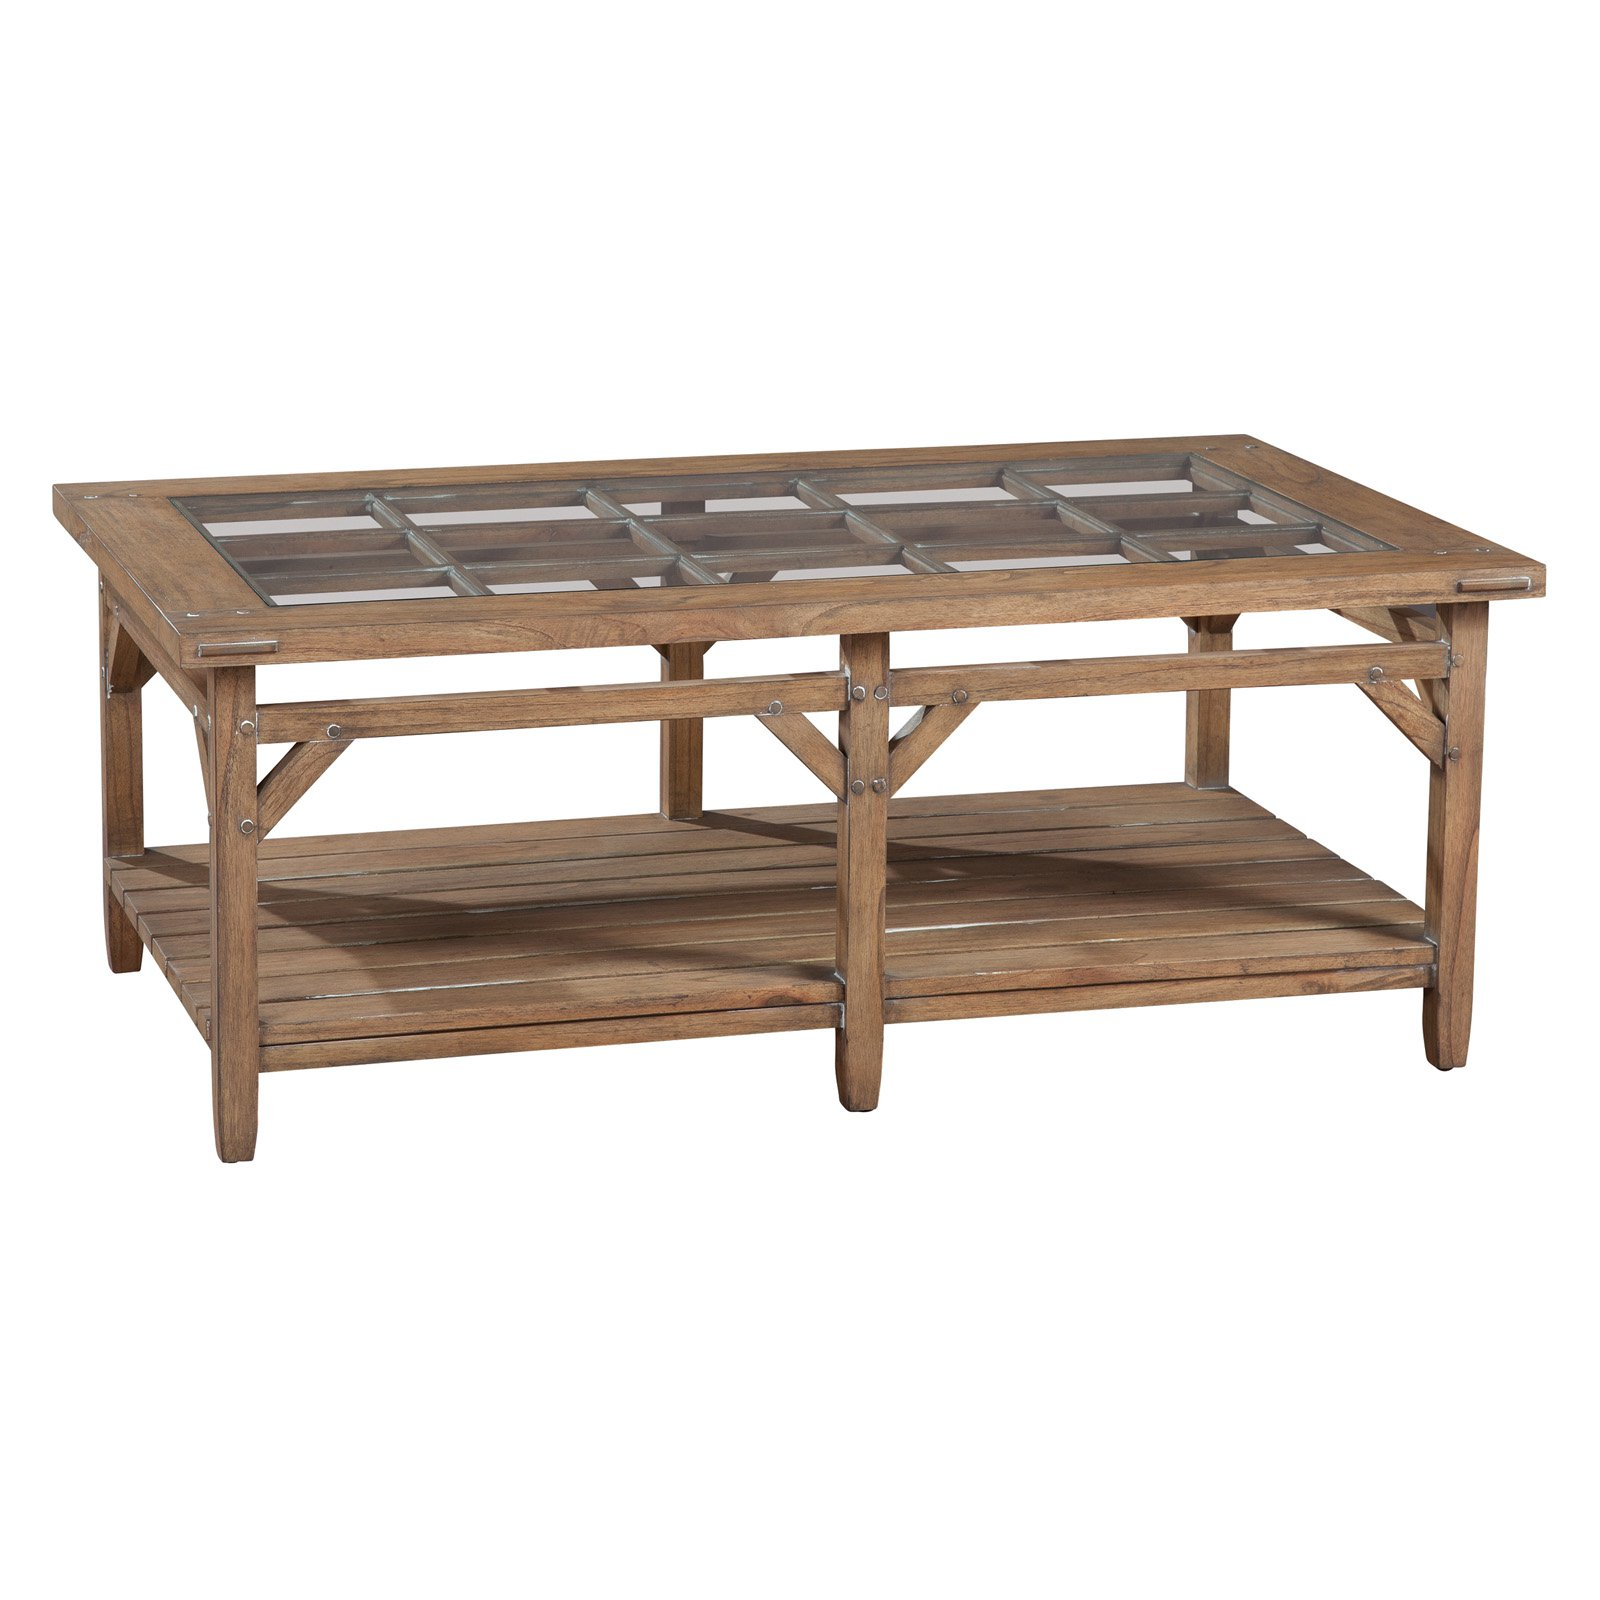 Hekman Suttons Bay Primitive Coffee Table Primitive Coffee Table Coffee Table Wood